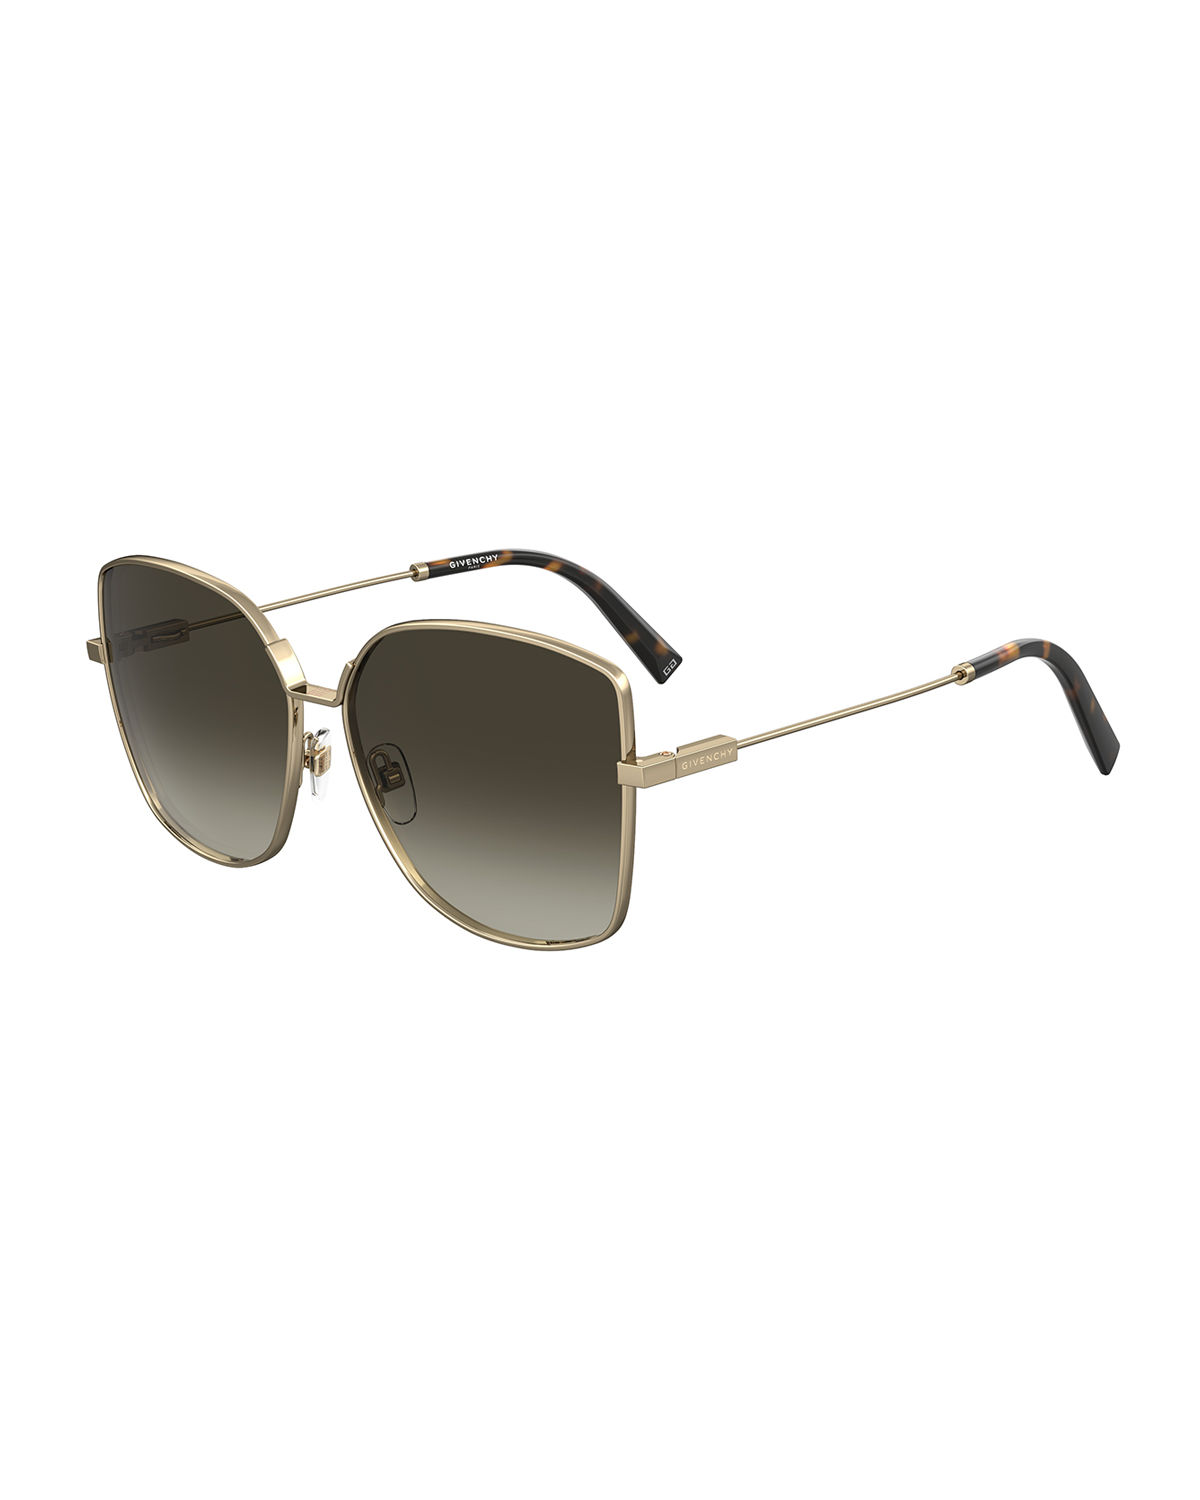 Givenchy SQUARE METAL SUNGLASSES